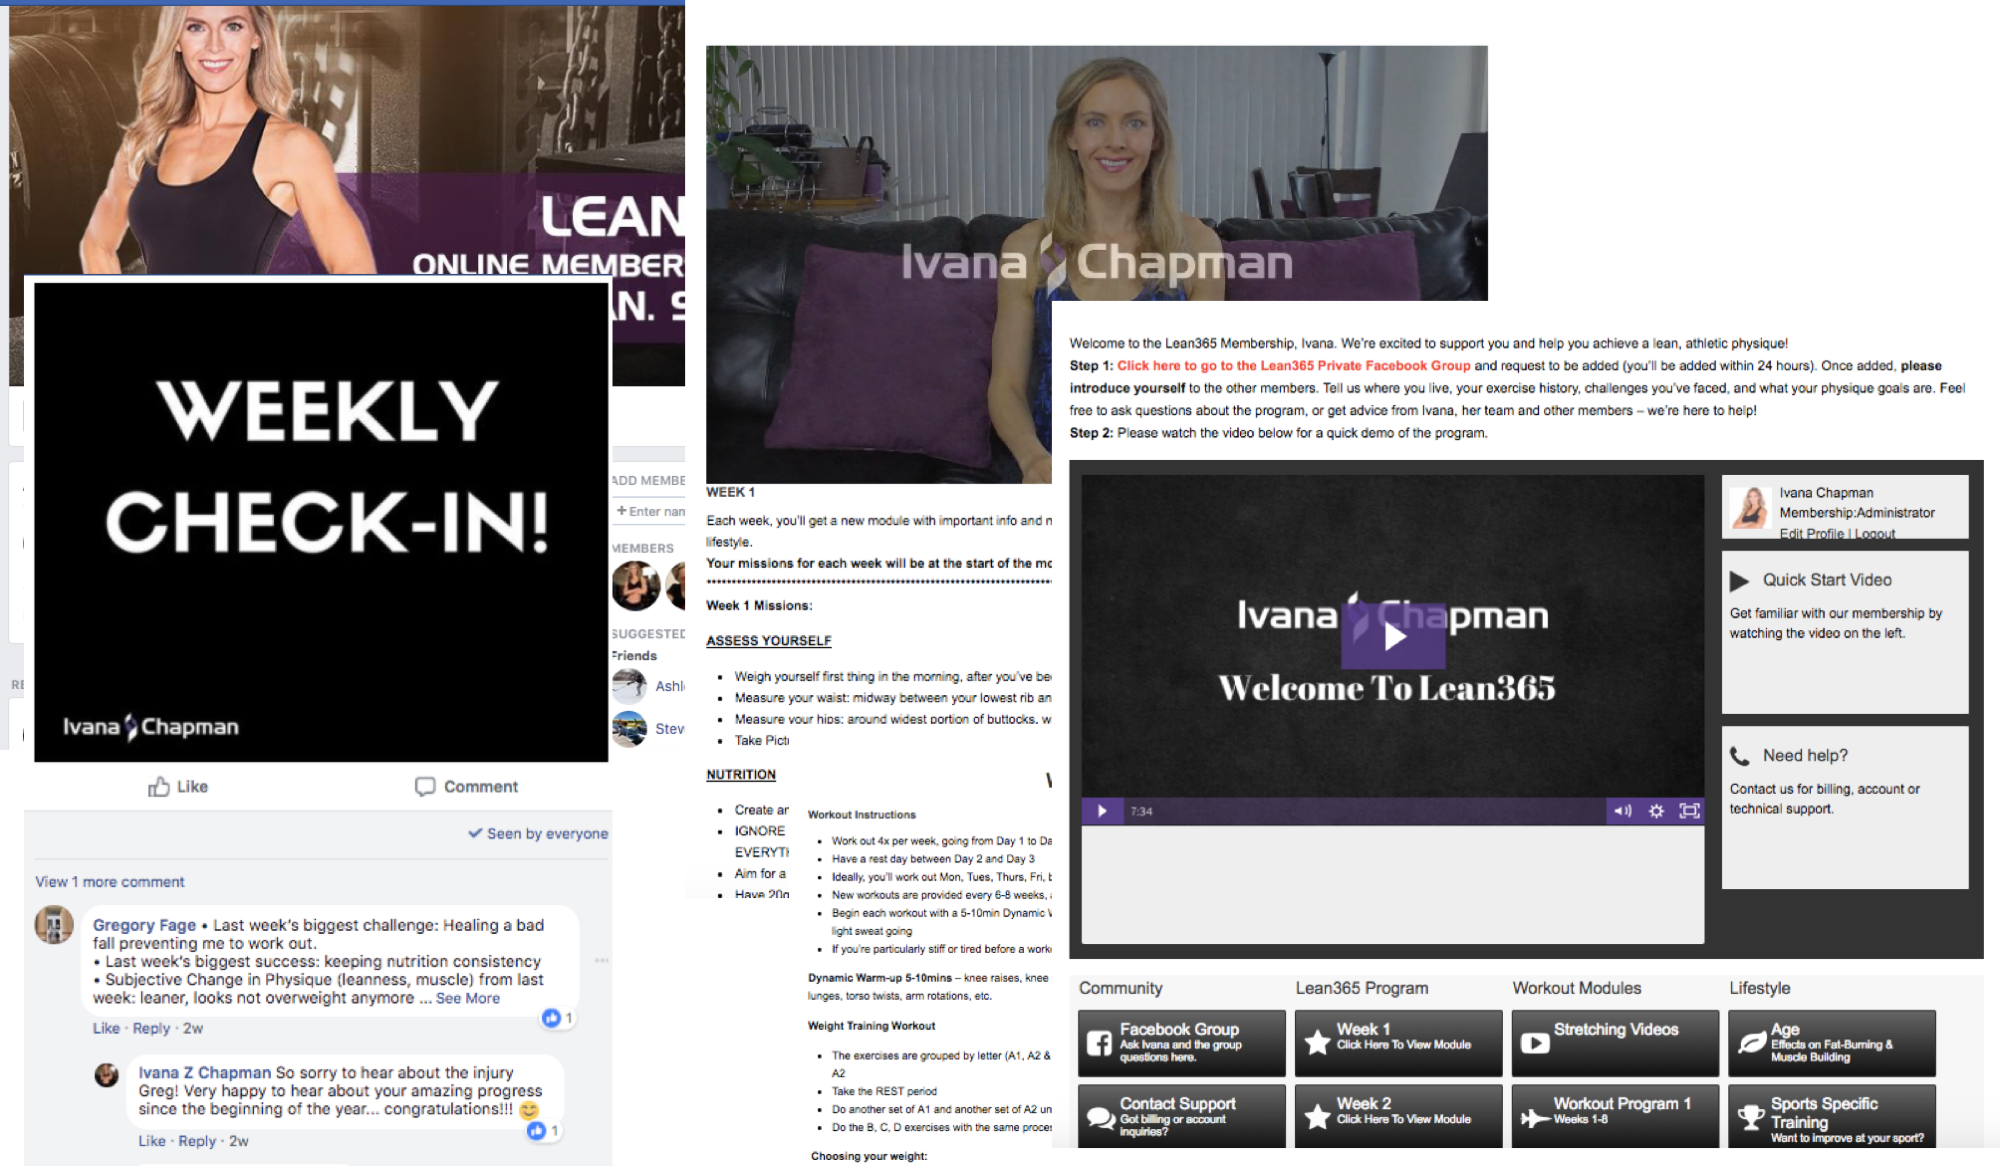 Lean365-Product-Services-For-Lean365-Members